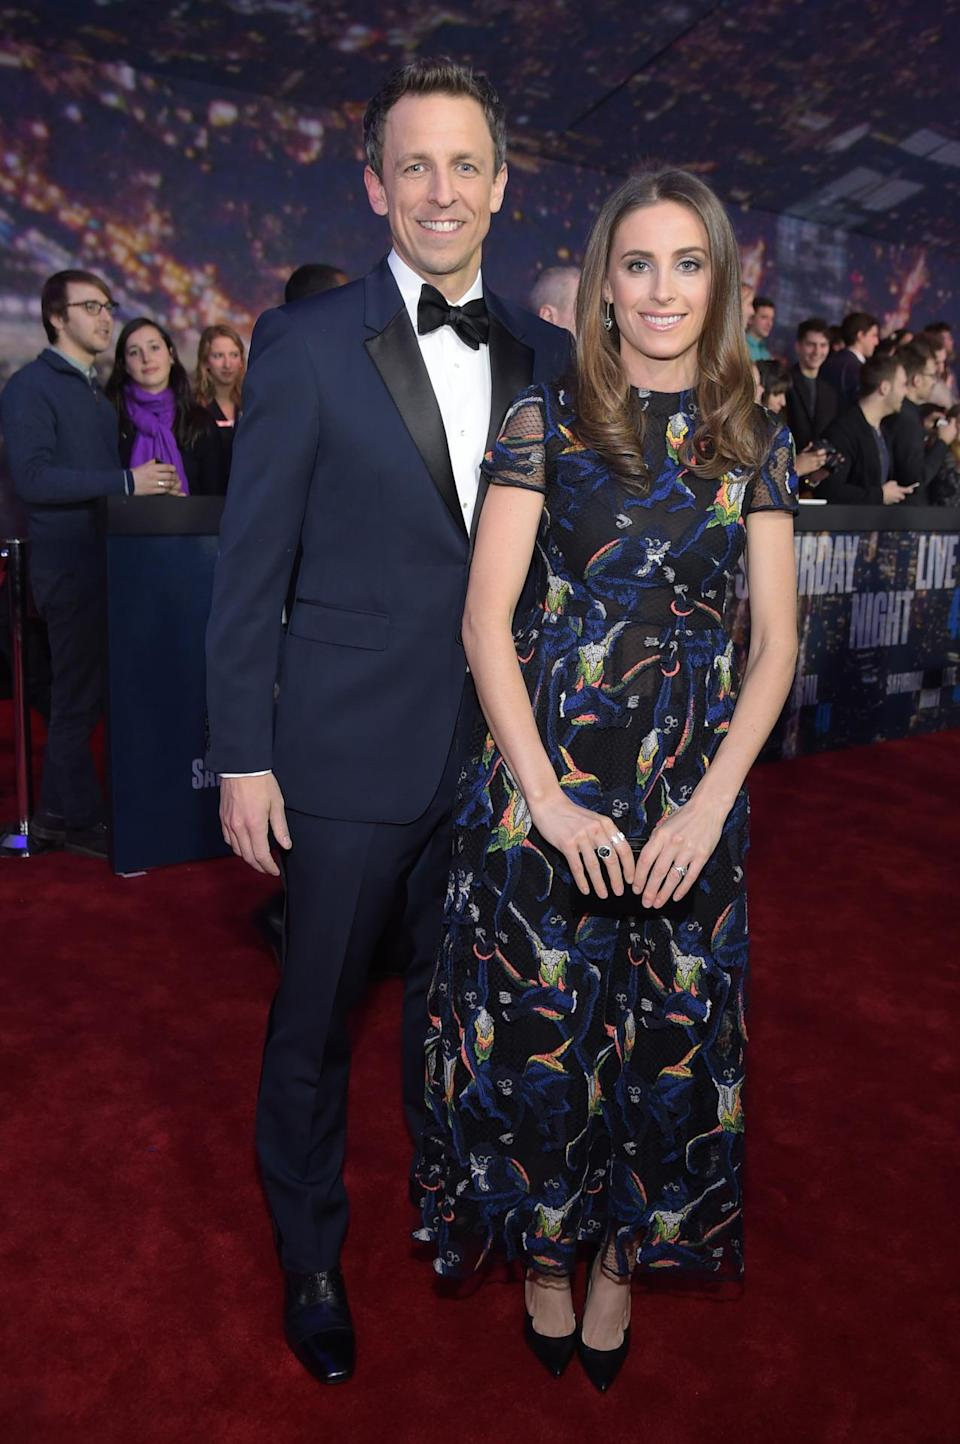 Seth Meyers might have his own late night talk show, but it's his wife, lawyer Alexi Ashe, with all the style.